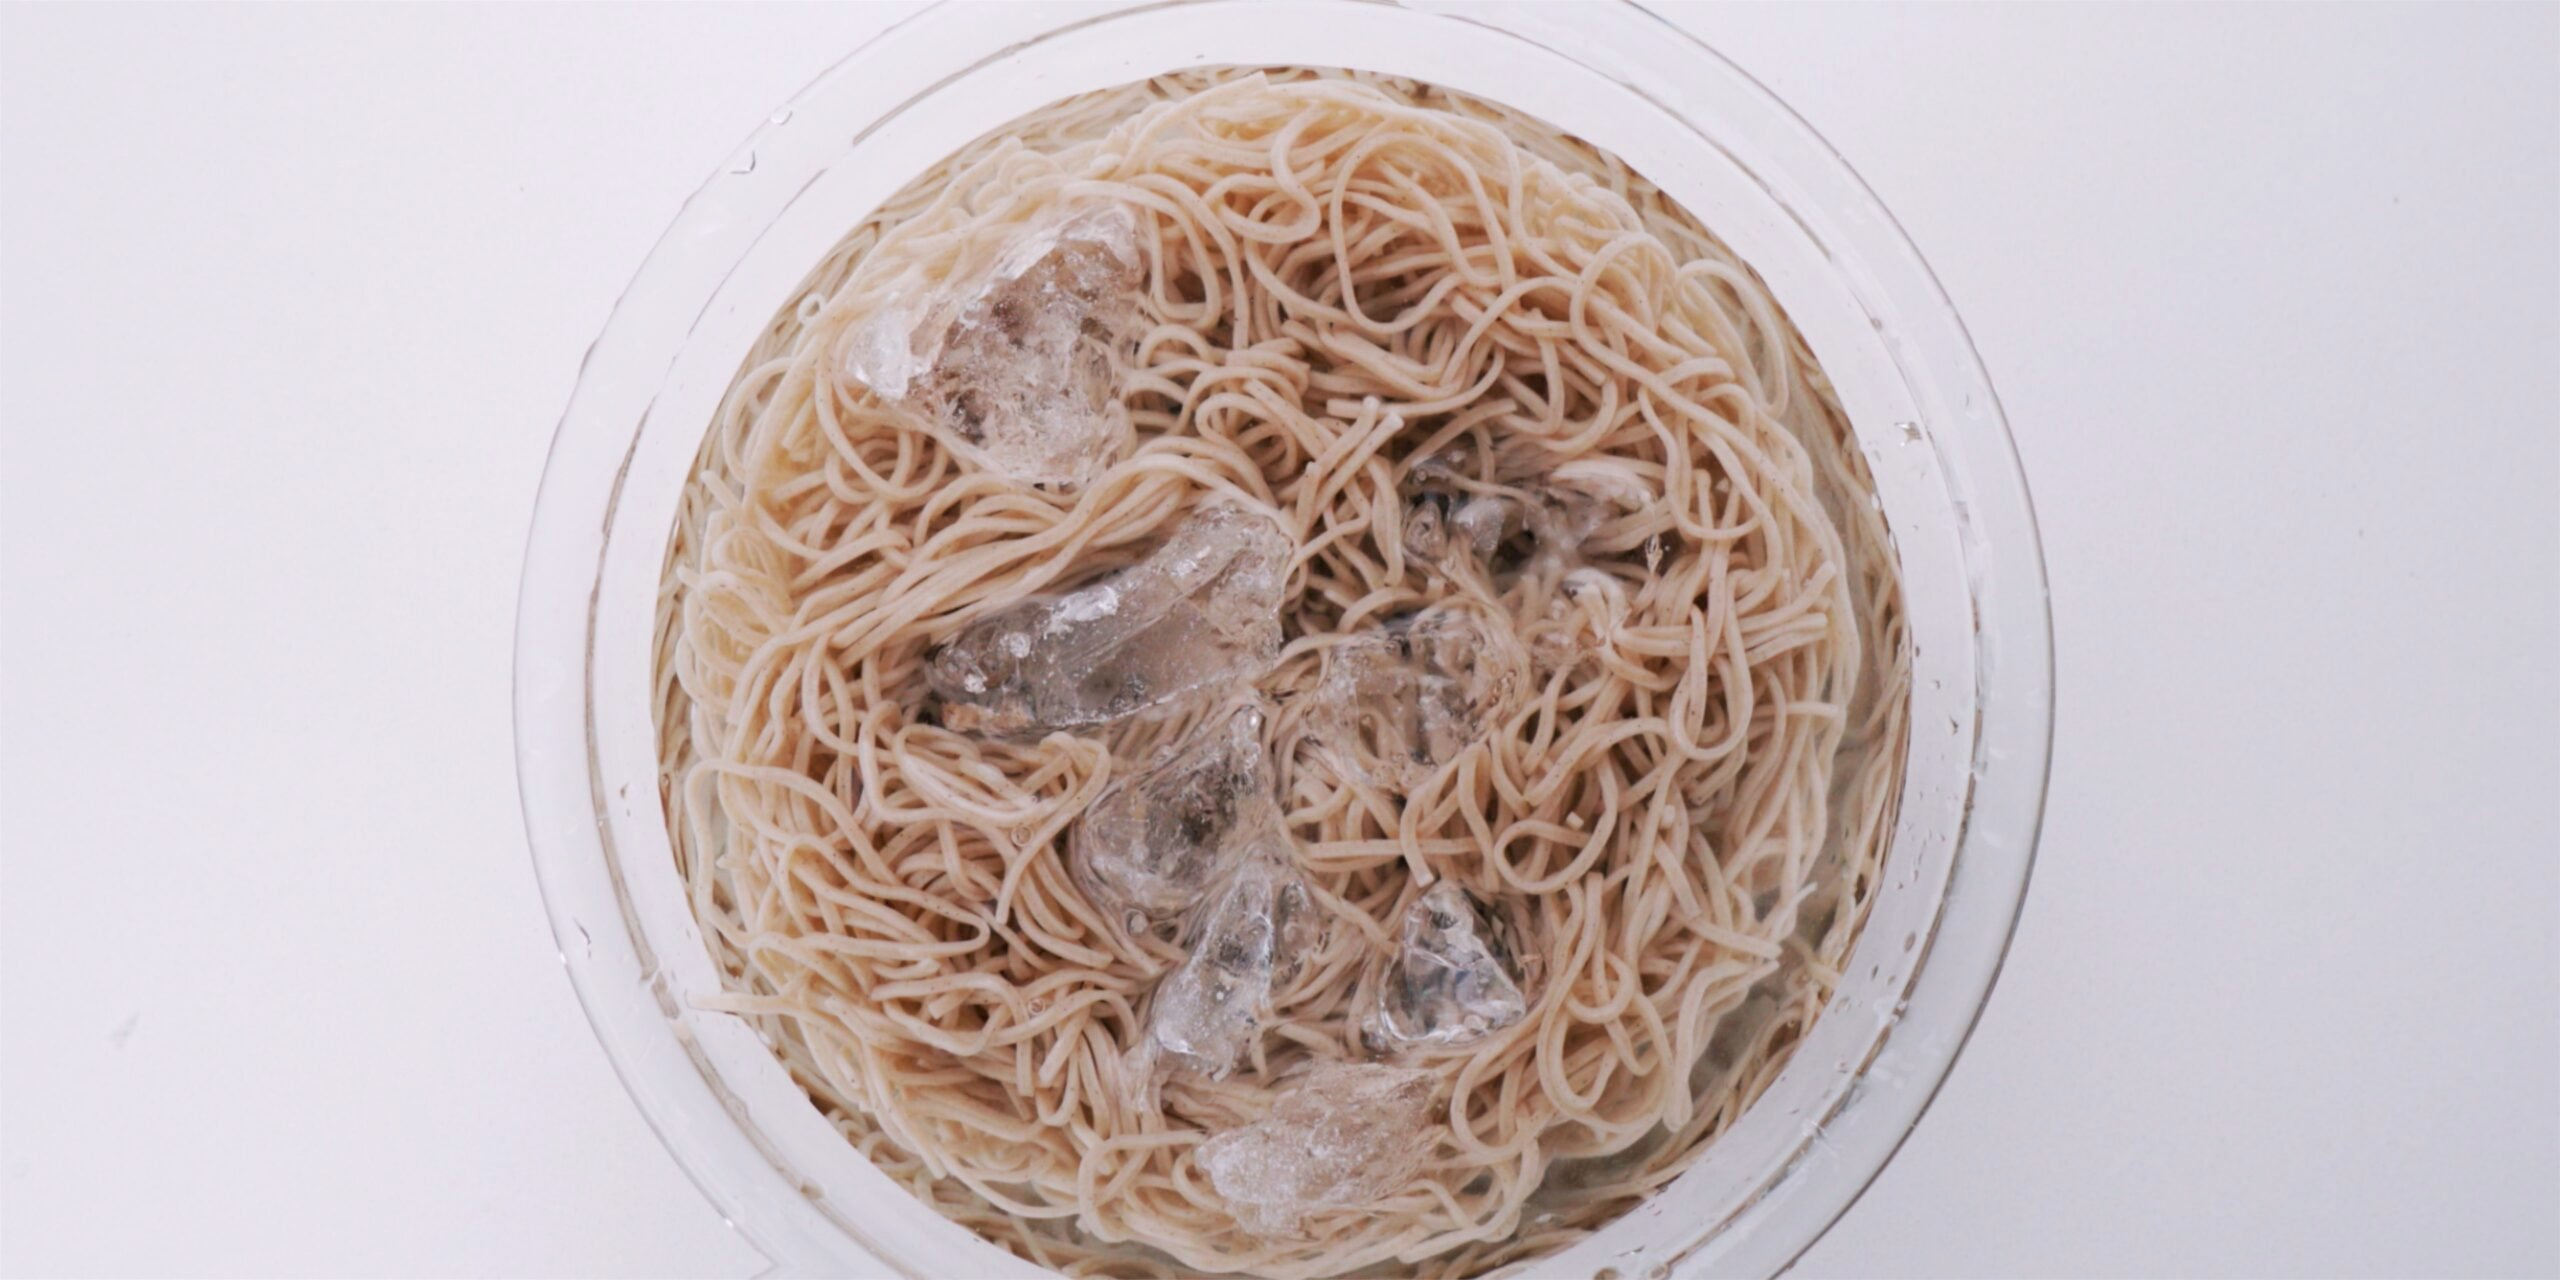 Chilling soba noodles in a bowl of ice water.